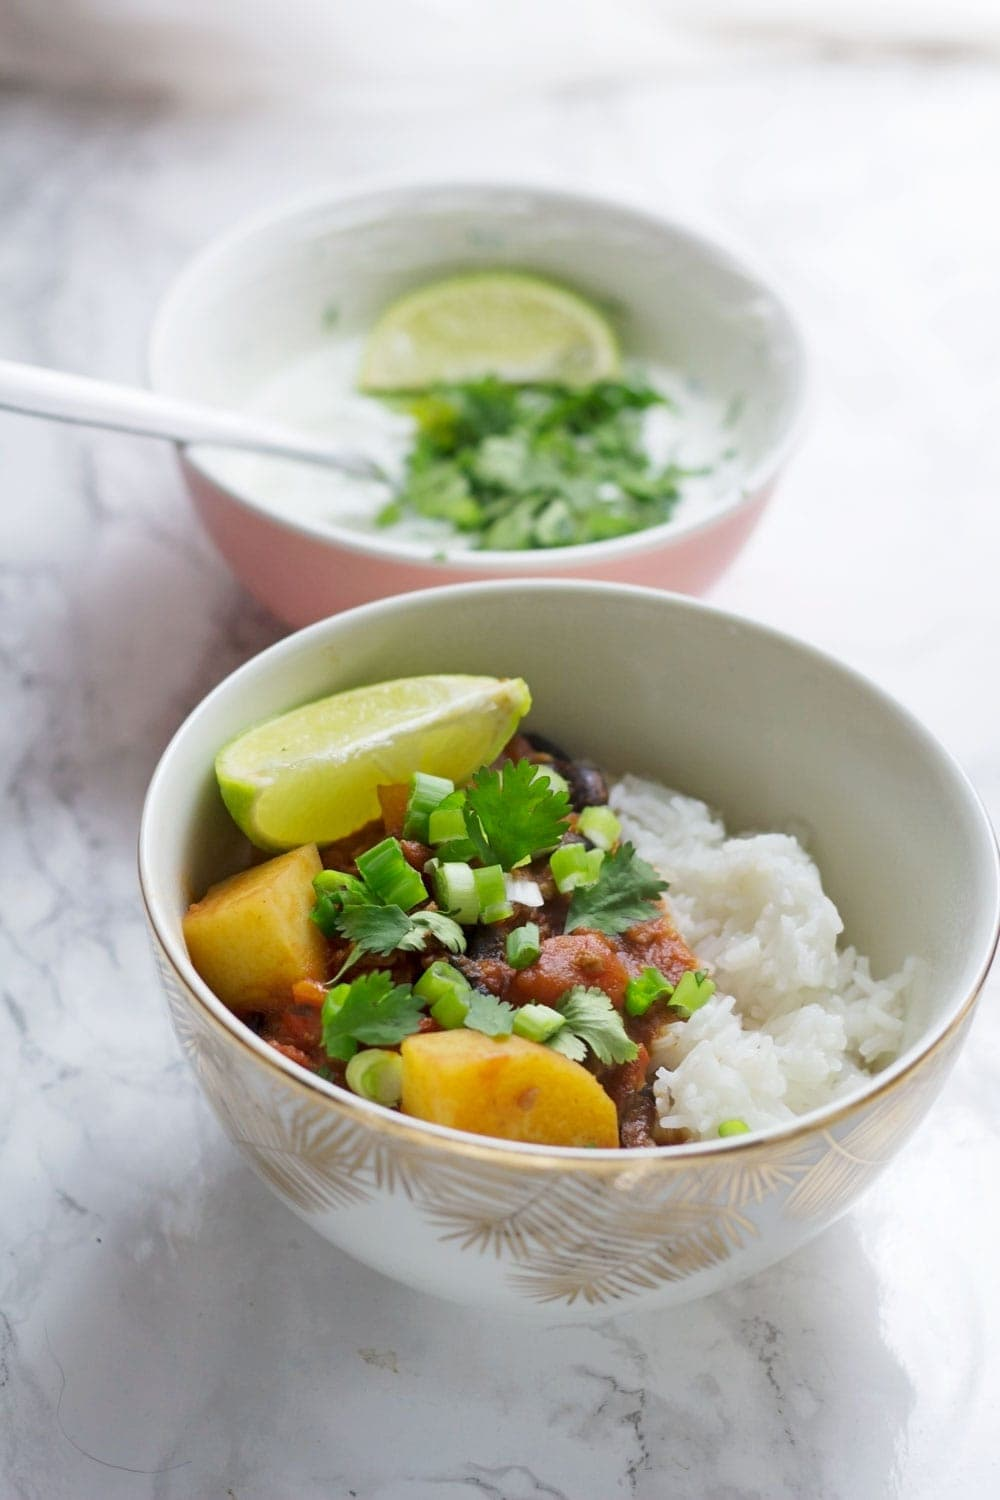 This chorizo chilli is a brilliant twist on a traditional chilli. The addition of potato makes it a hearty meal in its own right and the lime & coriander yoghurt cools the whole thing down perfectly.